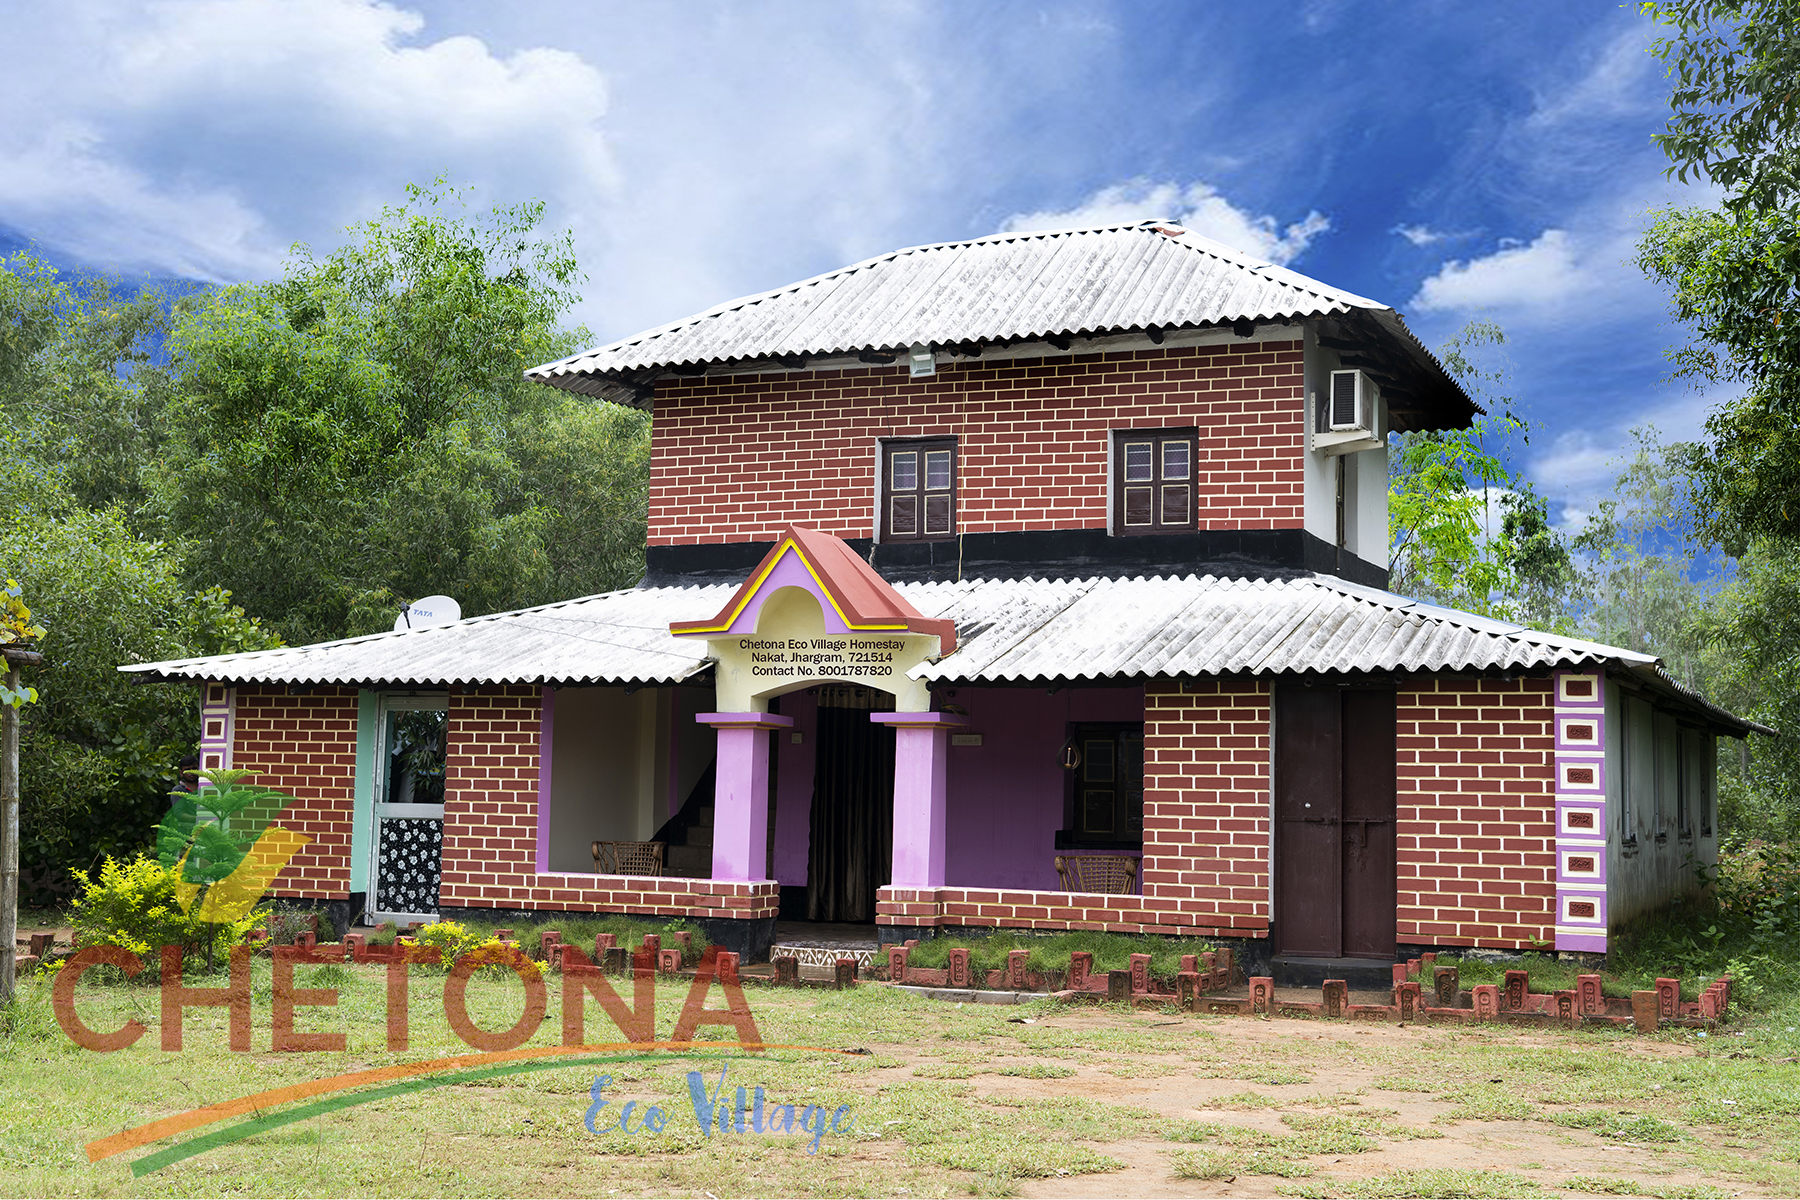 Chetona Eco Village Homestay